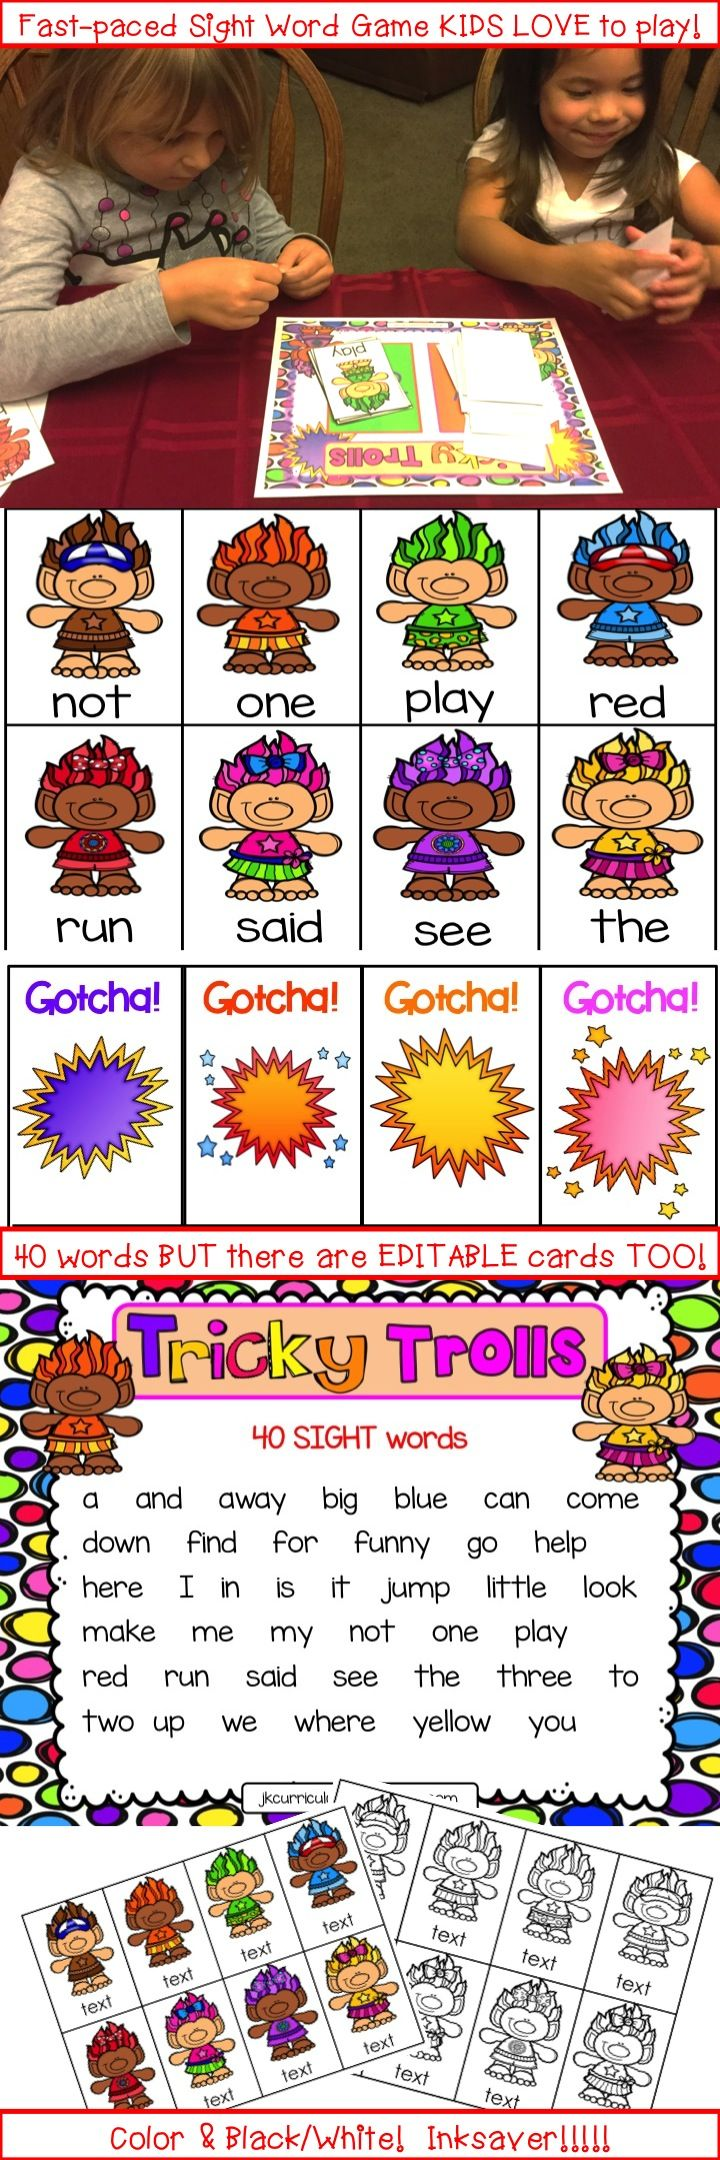 This is one of our best-selling game formats!  Kids LOVE playing it and beg to play over and over again.  With the new Trolls movie out this game will be a hit in your Kindergarten or 1st grade classroom!  Find it at our TPT store: JK CurriculumConnection or click the link: https://www.teacherspayteachers.com/Product/Sight-Word-Game-Tricky-Trolls-2869374